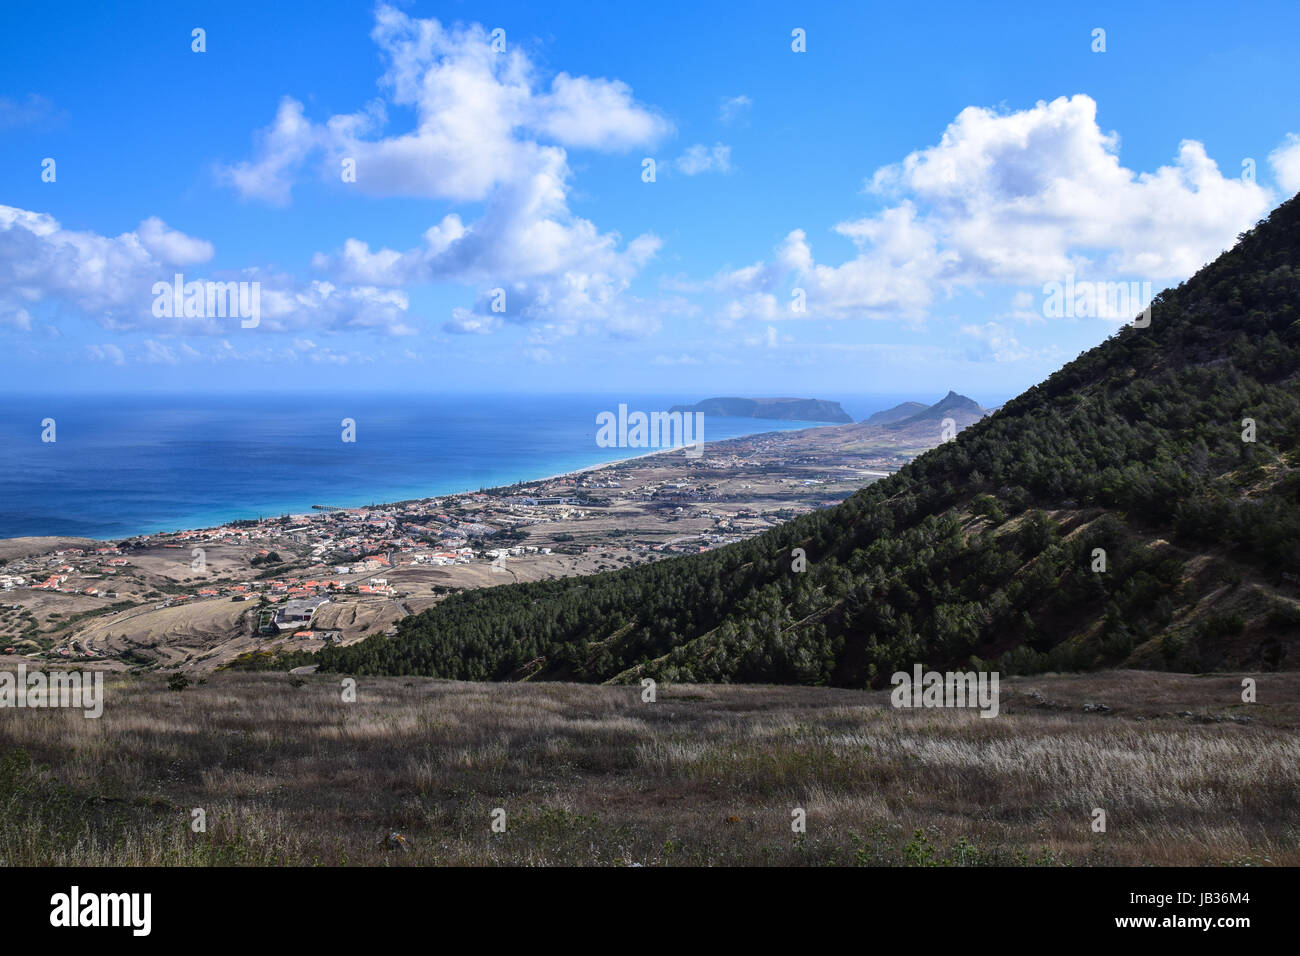 View of Vila Baleira, Porto Santo Island with Ilheu da Cal on the horizon - Stock Image